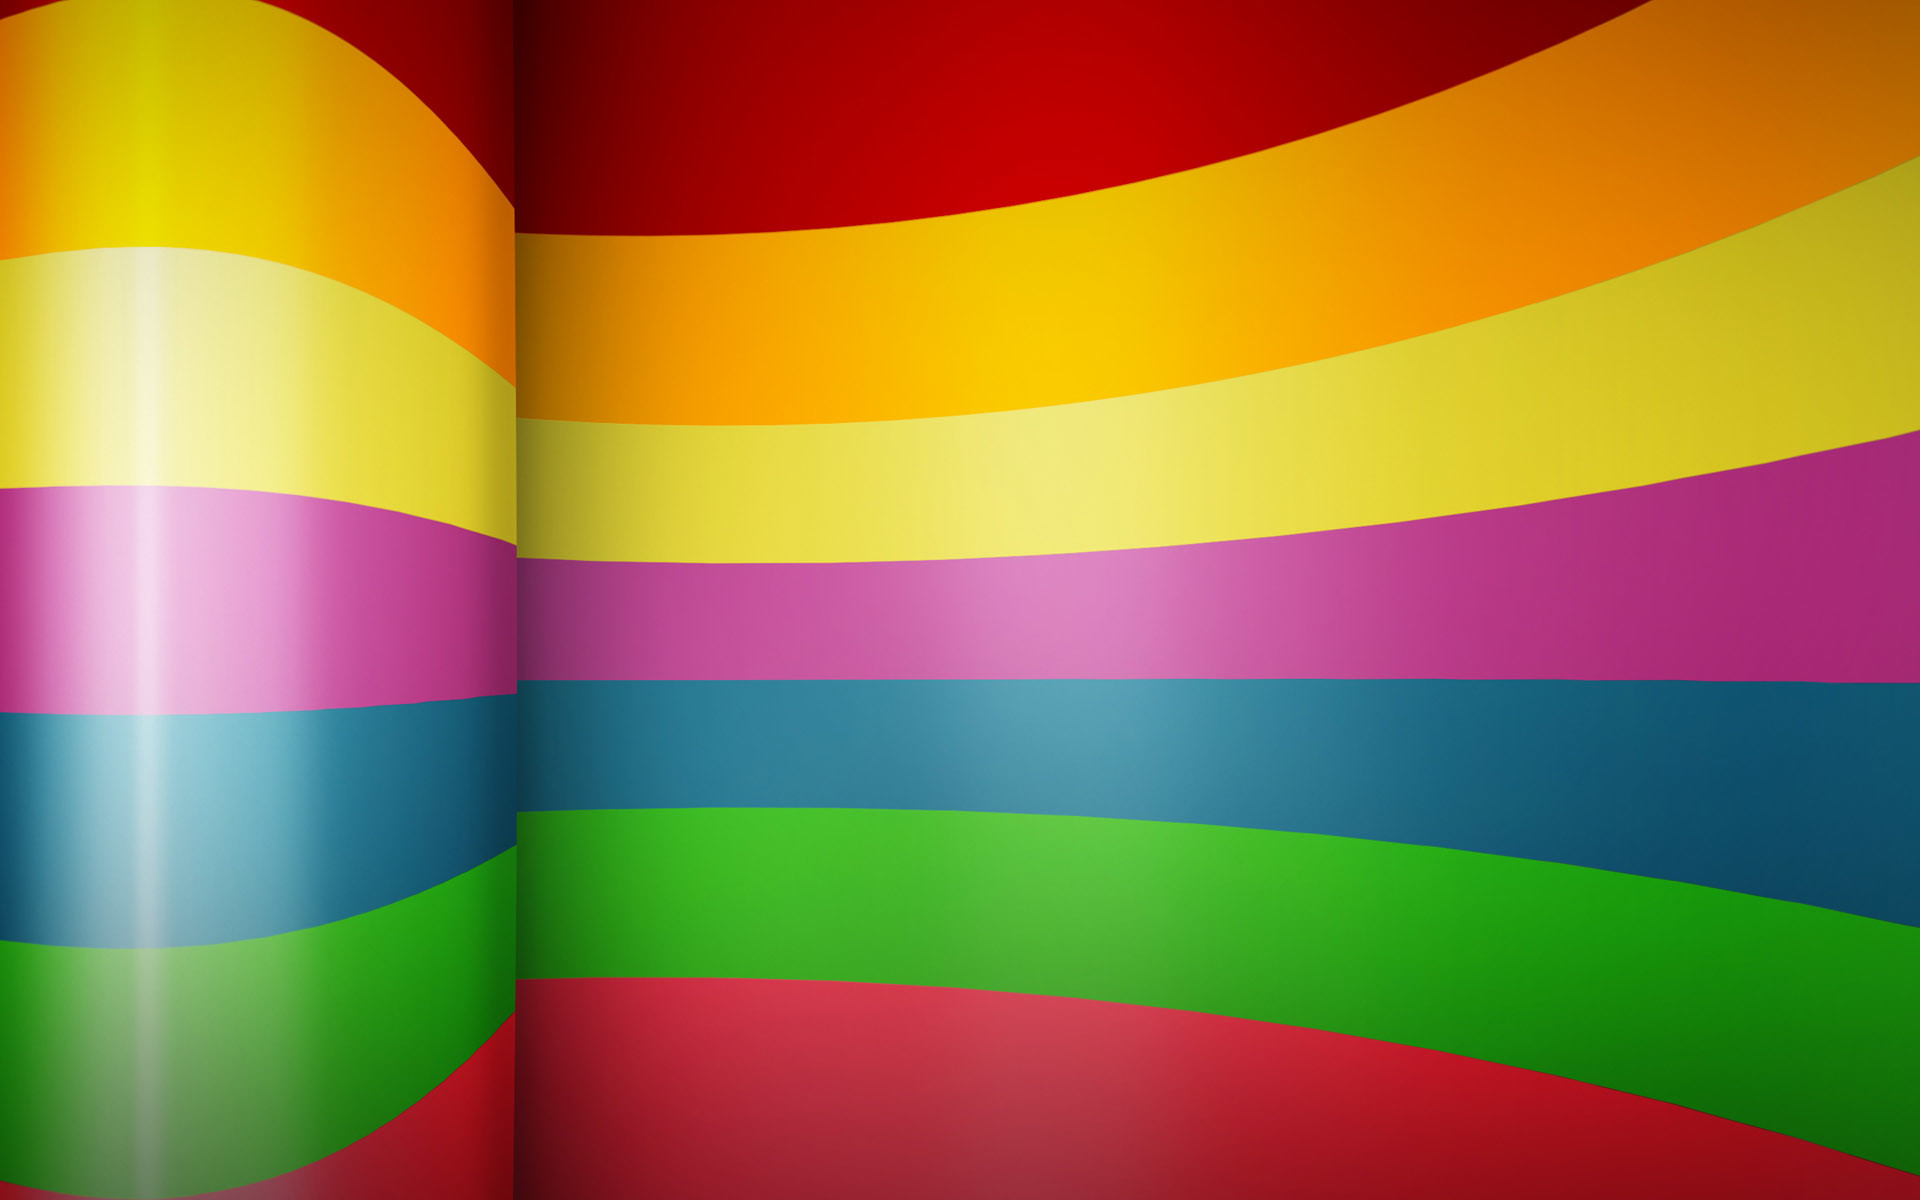 Colorful, Wallpaper, Photos, Perfect, High Resolution Images, Free Stock  Photos,